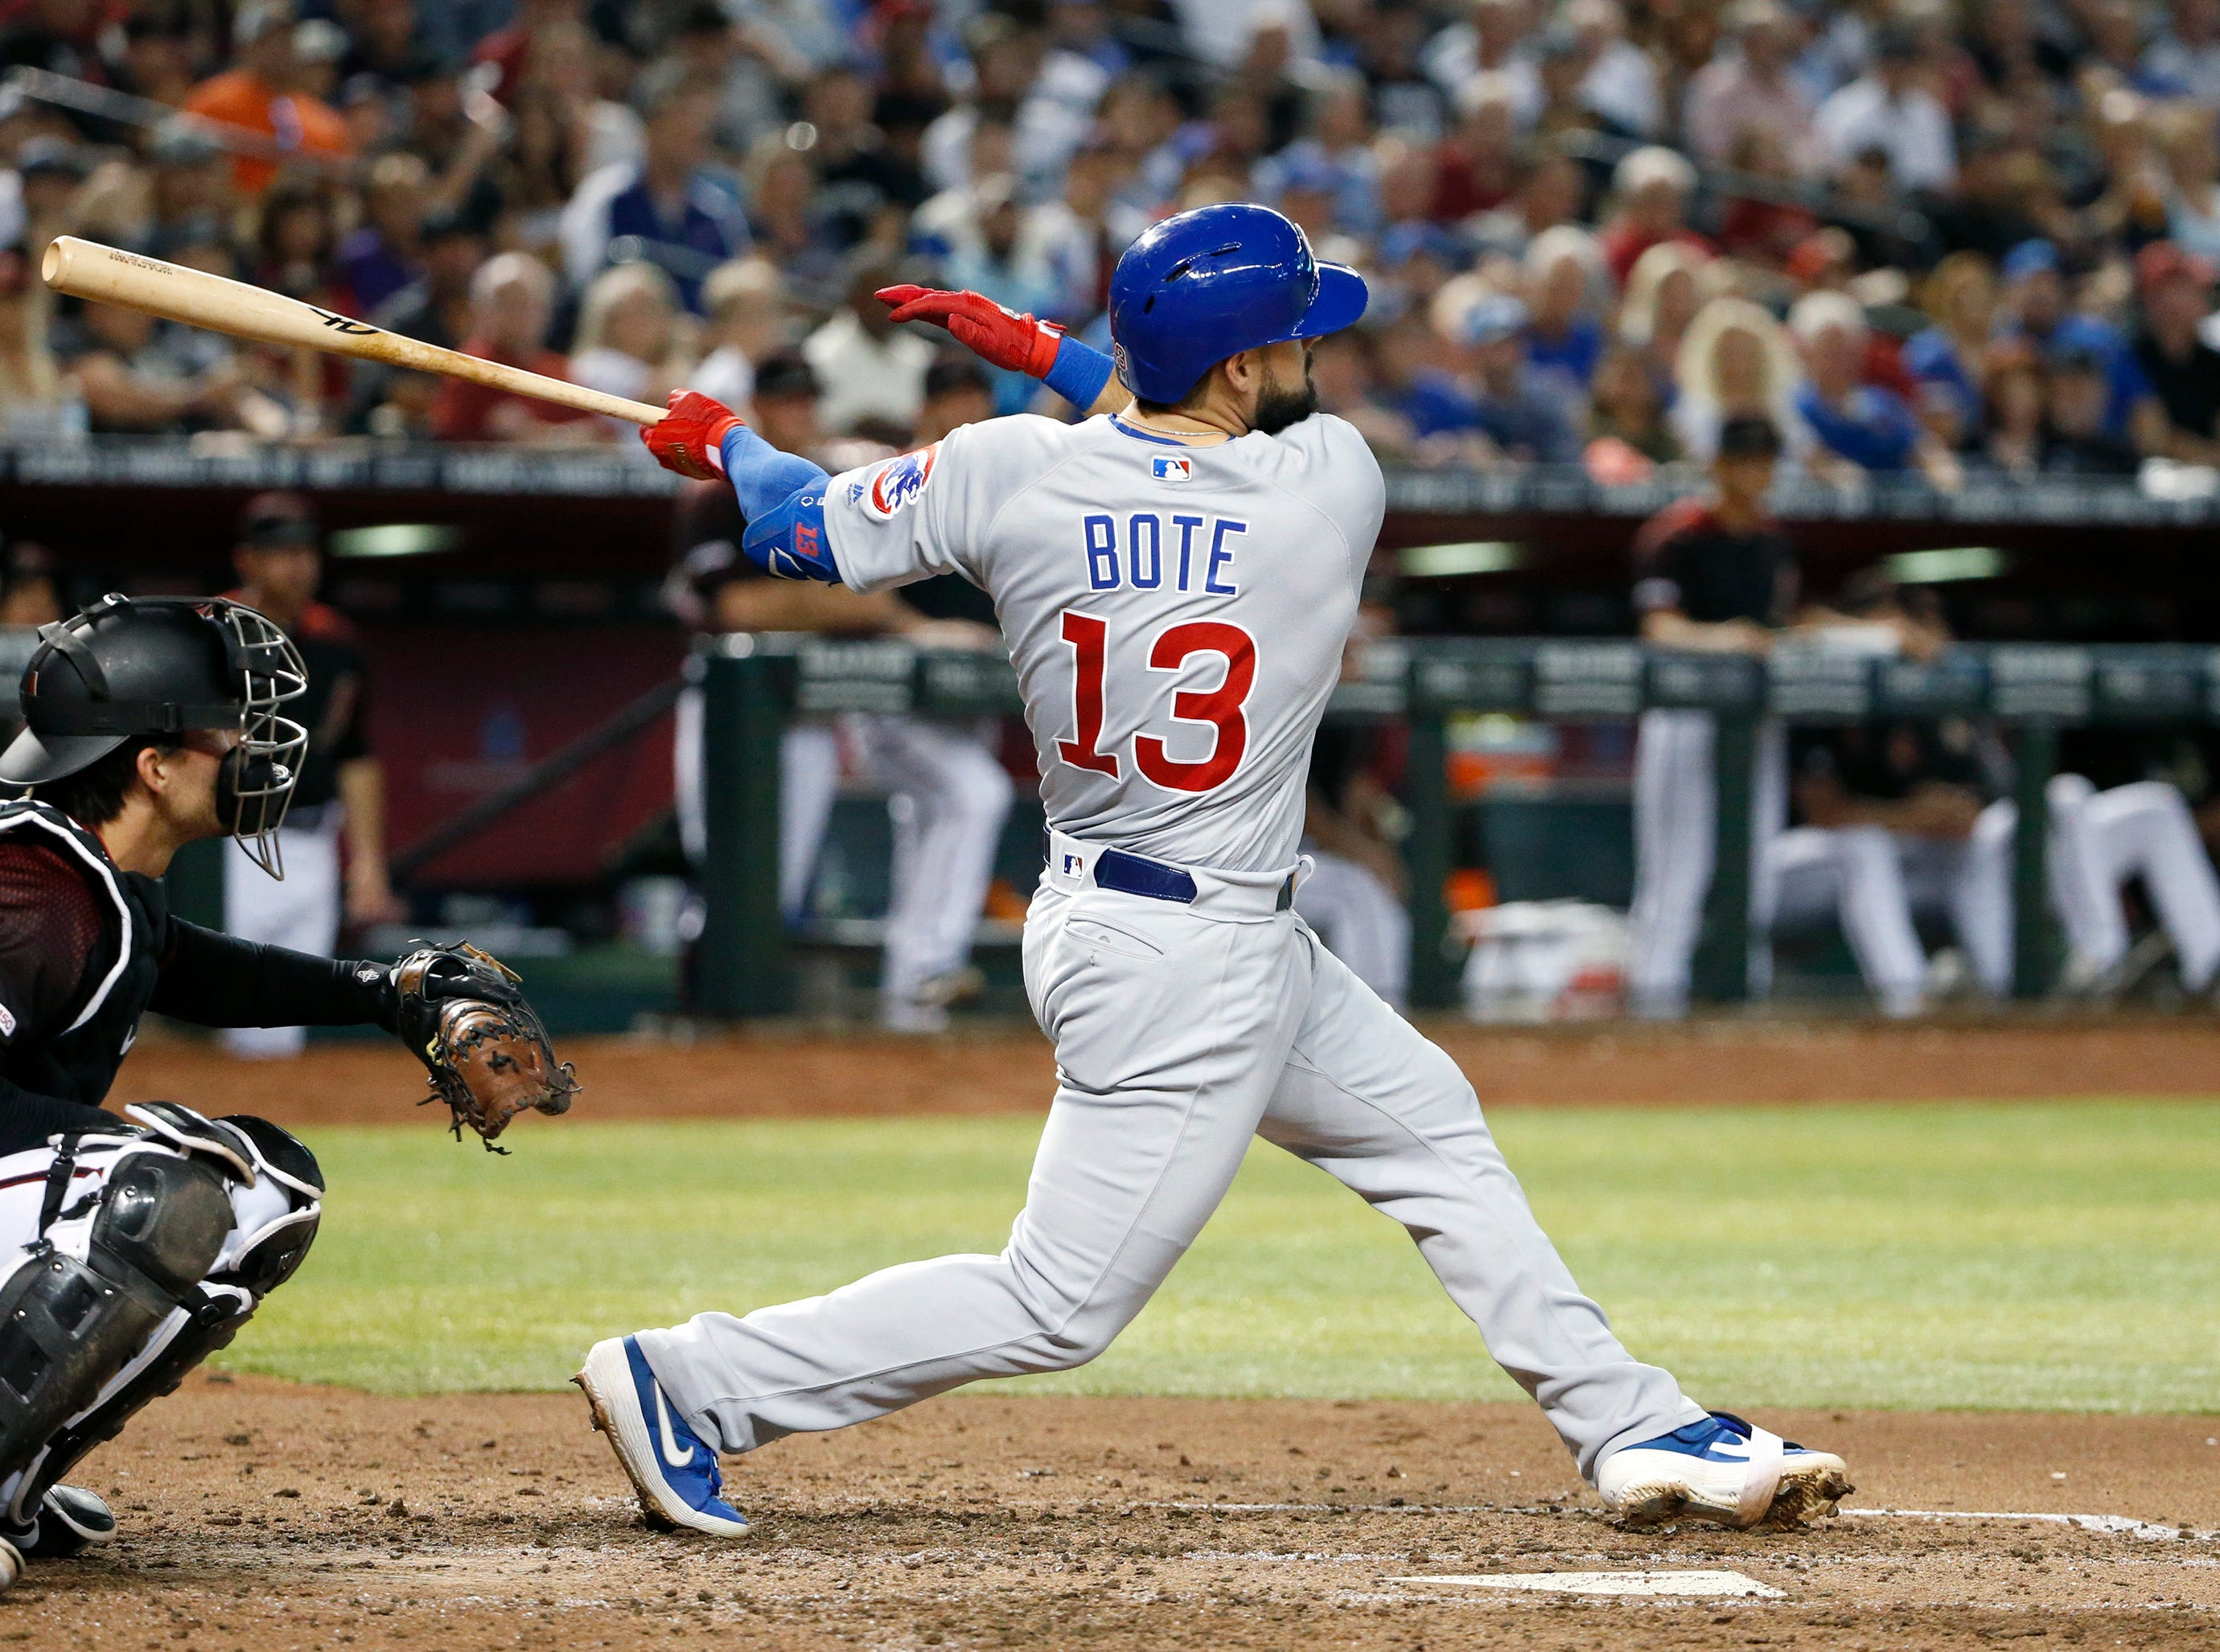 Chicago Cubs' David Bote (13) watches his three-run home run against the Arizona Diamondbacks during the third inning of a baseball game, Saturday, April 27, 2019, in Phoenix. (AP Photo/Ralph Freso)